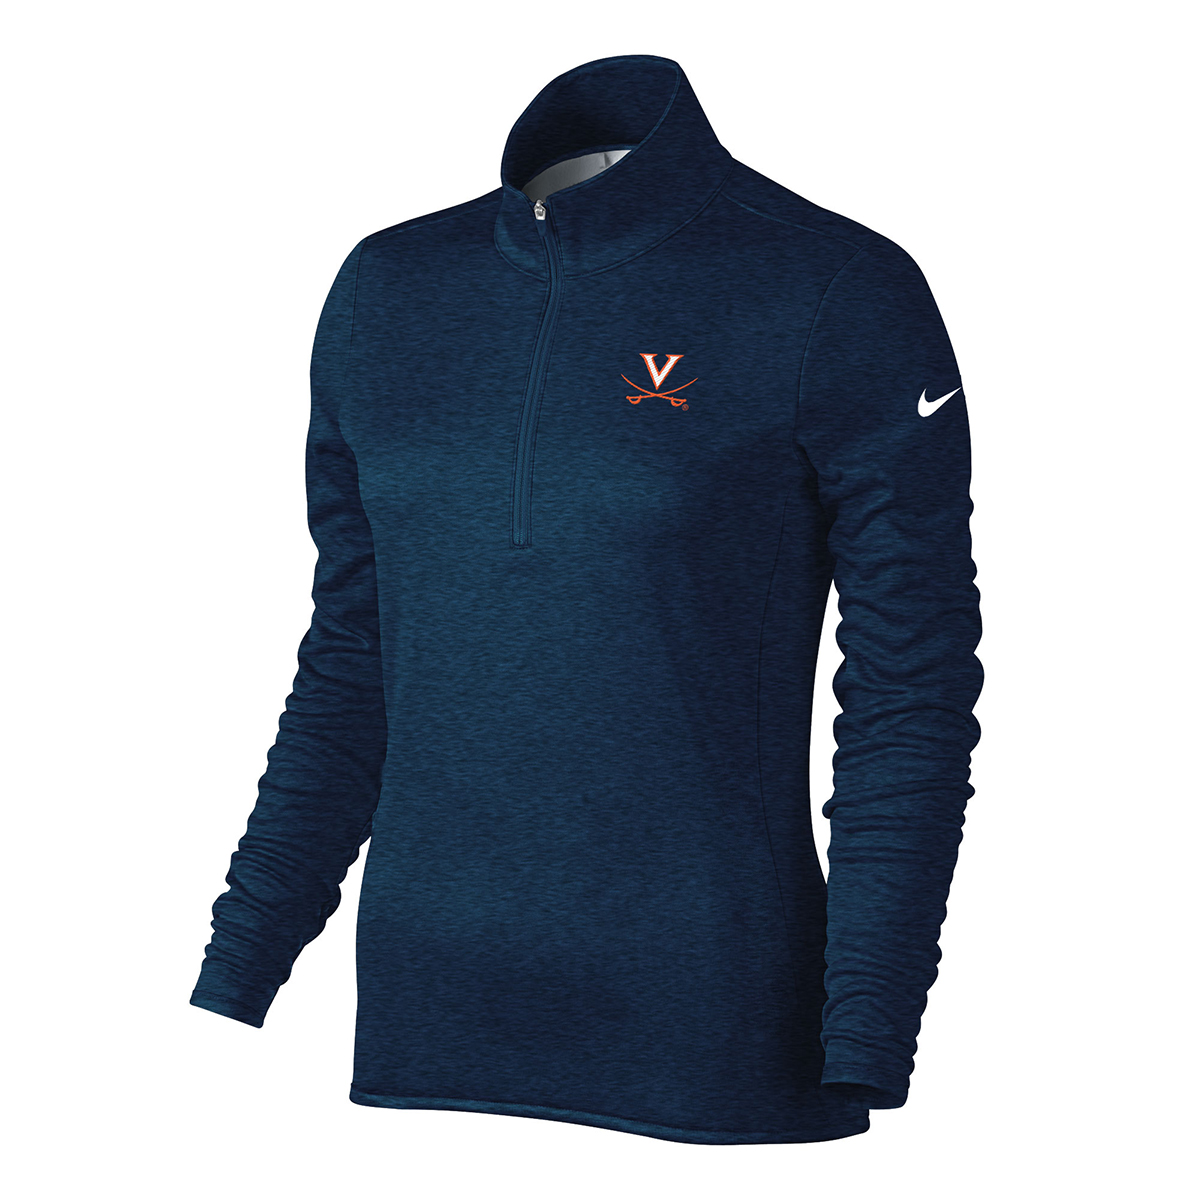 University of Virginia Ladies Lucky Azalea Half-Zip Top